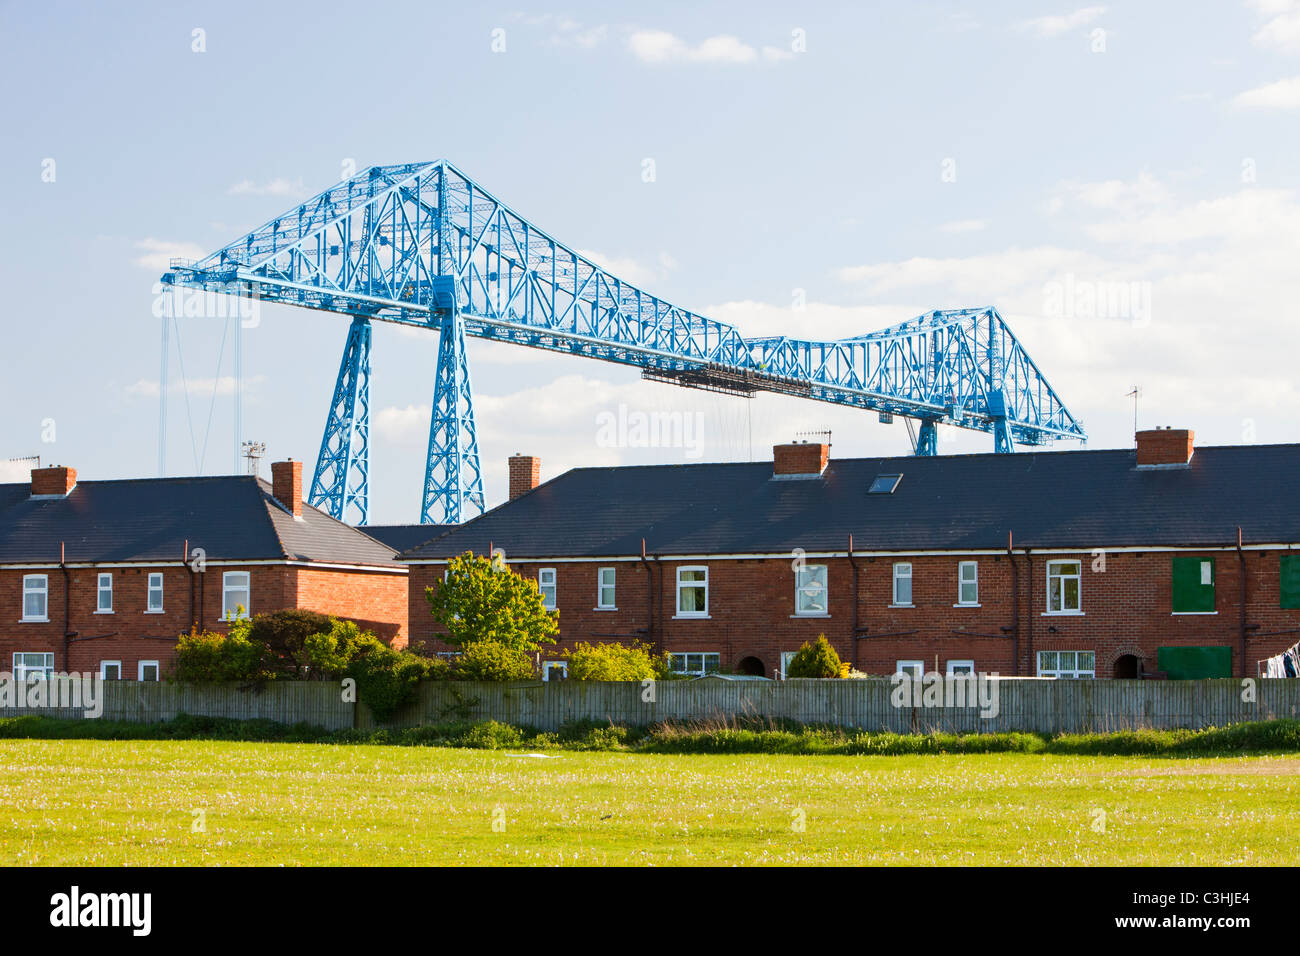 The Middlesbrough Transporter Bridge across the river Tees. - Stock Image